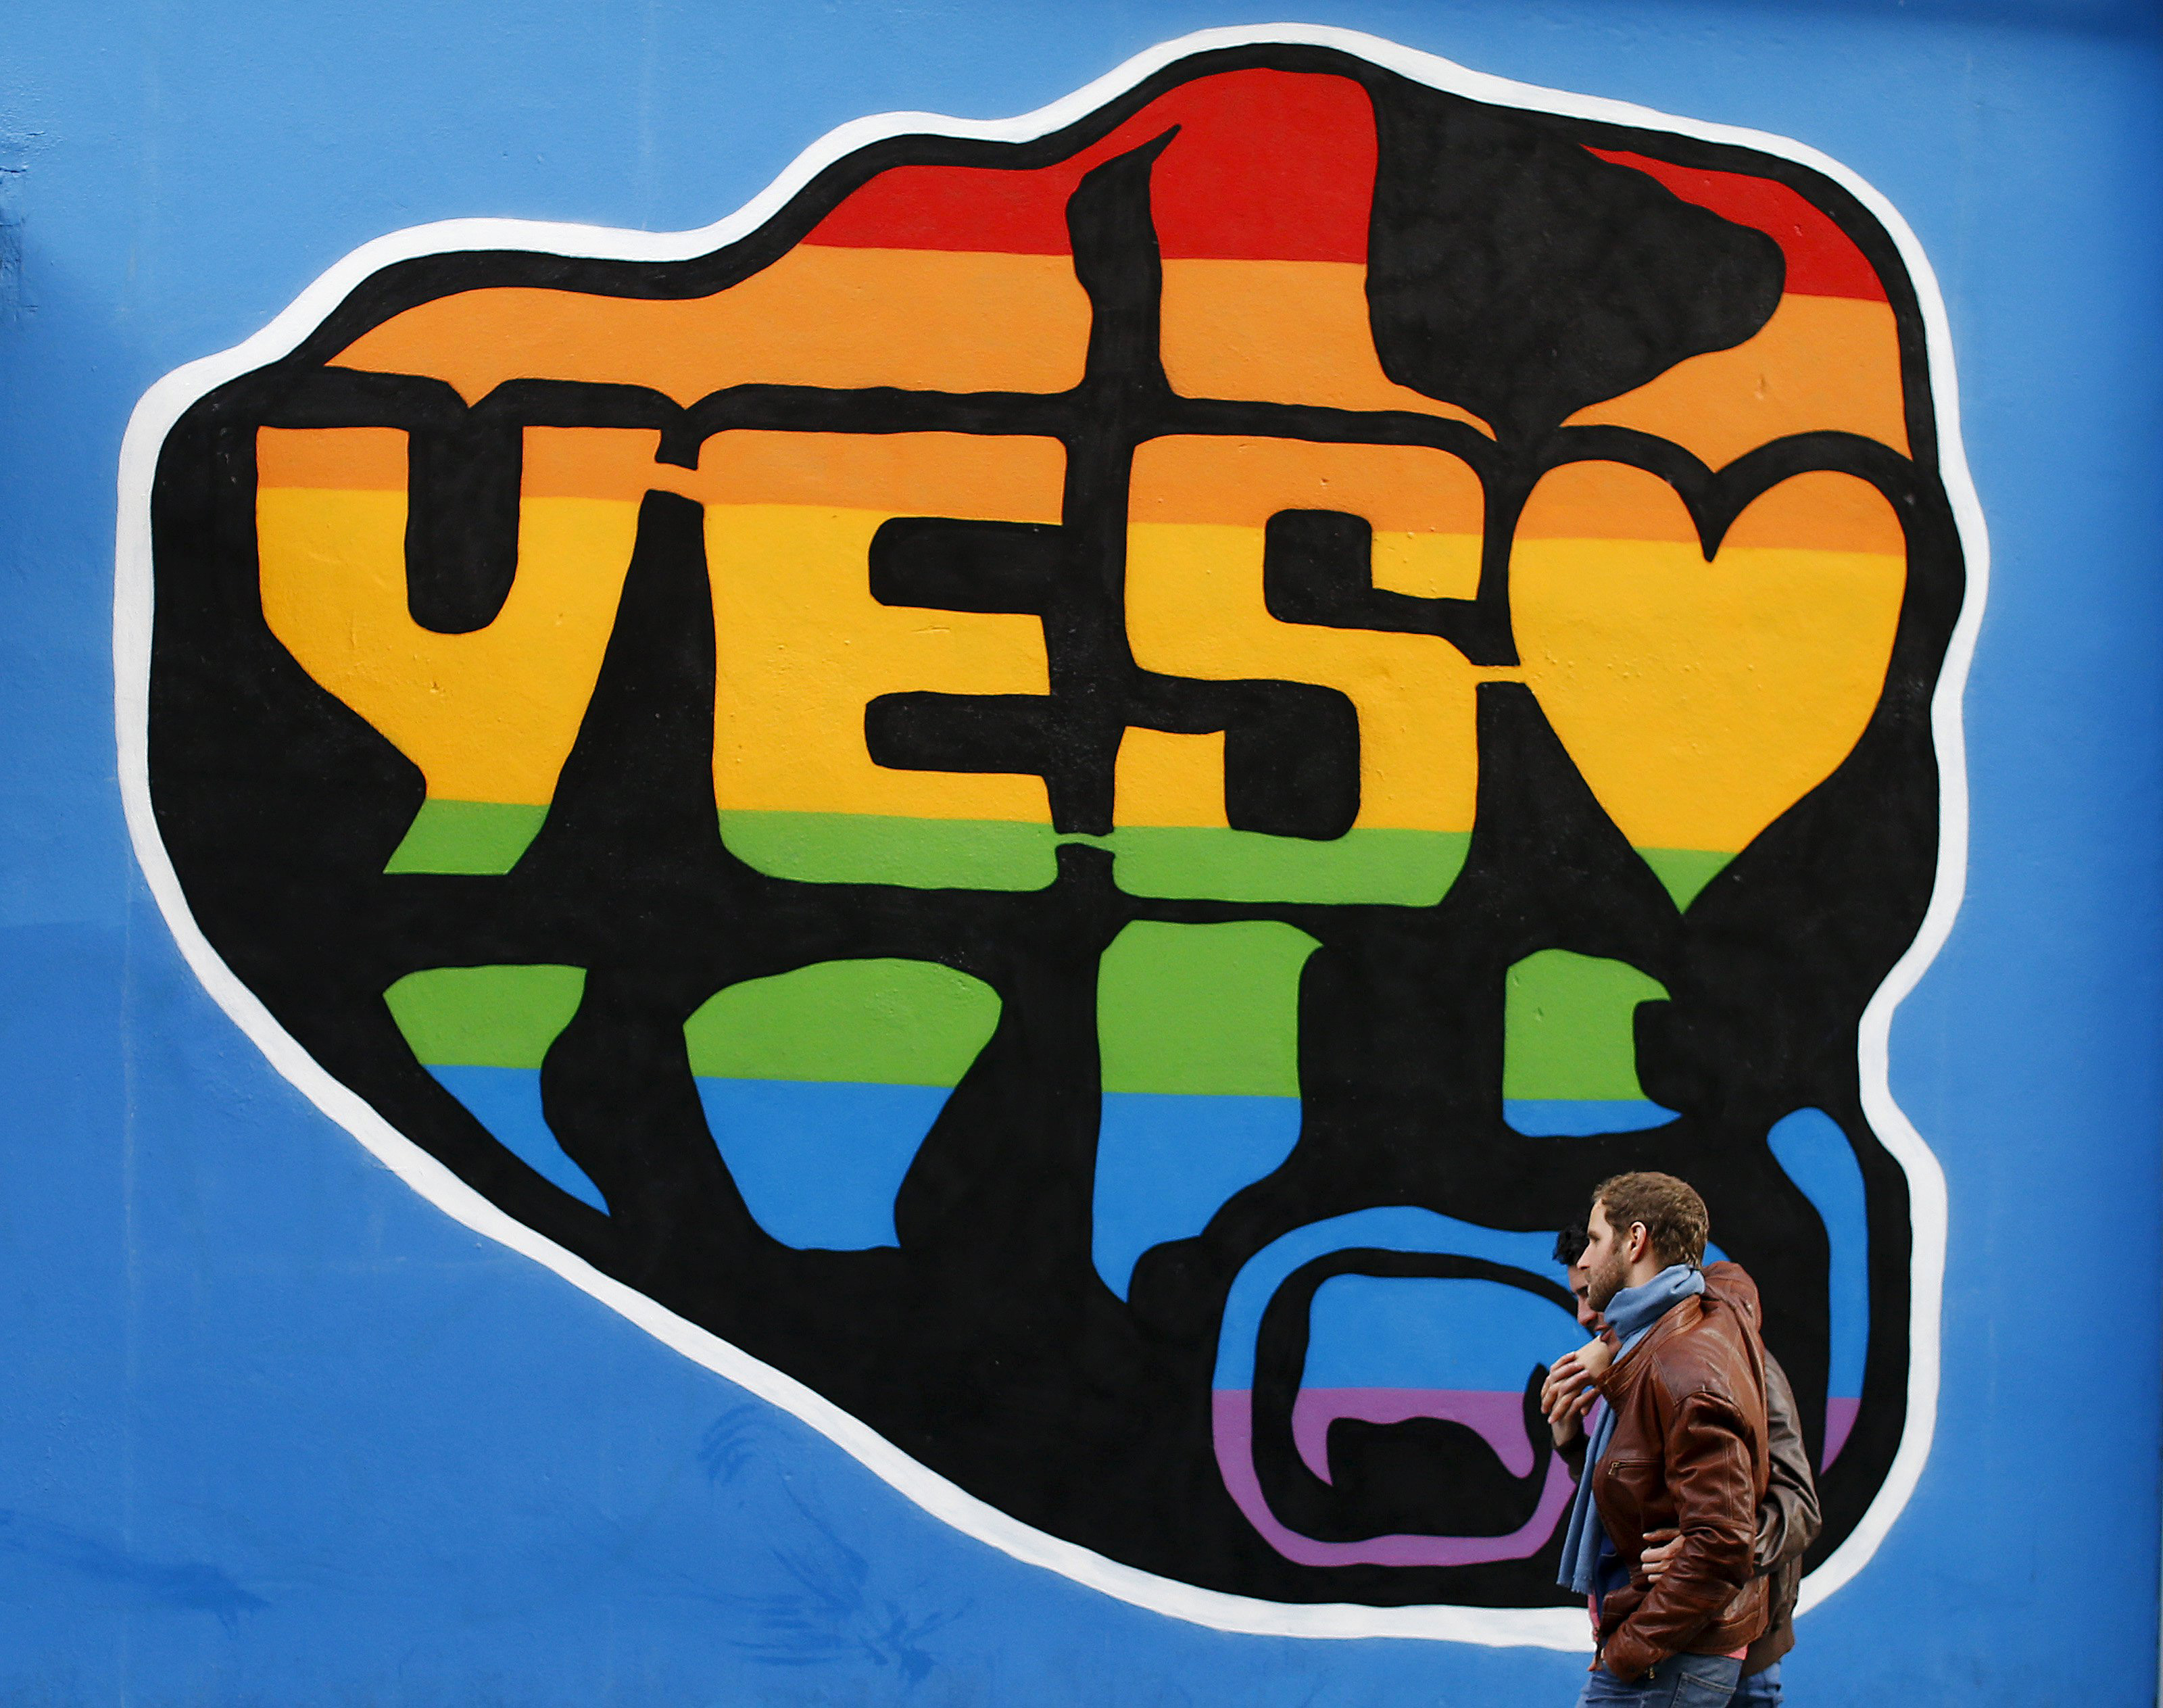 ethics gay marriage a social issue Marriage and family issues for lgbt people psychology has an important perspective to bring to the topics of marriage and family issues for lesbian, gay social.